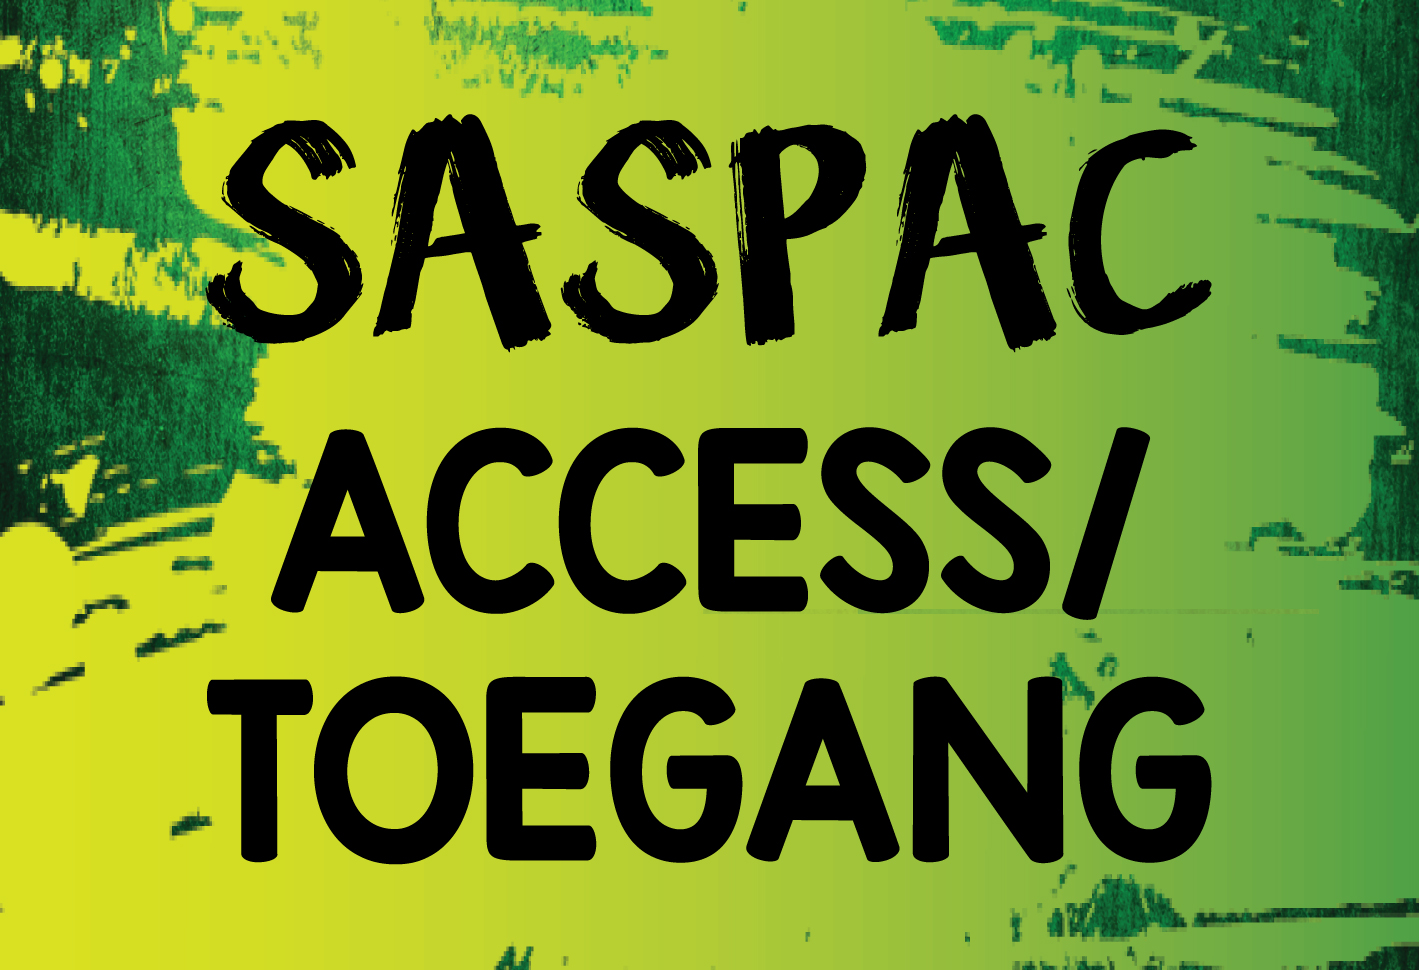 Saspac toegang access button